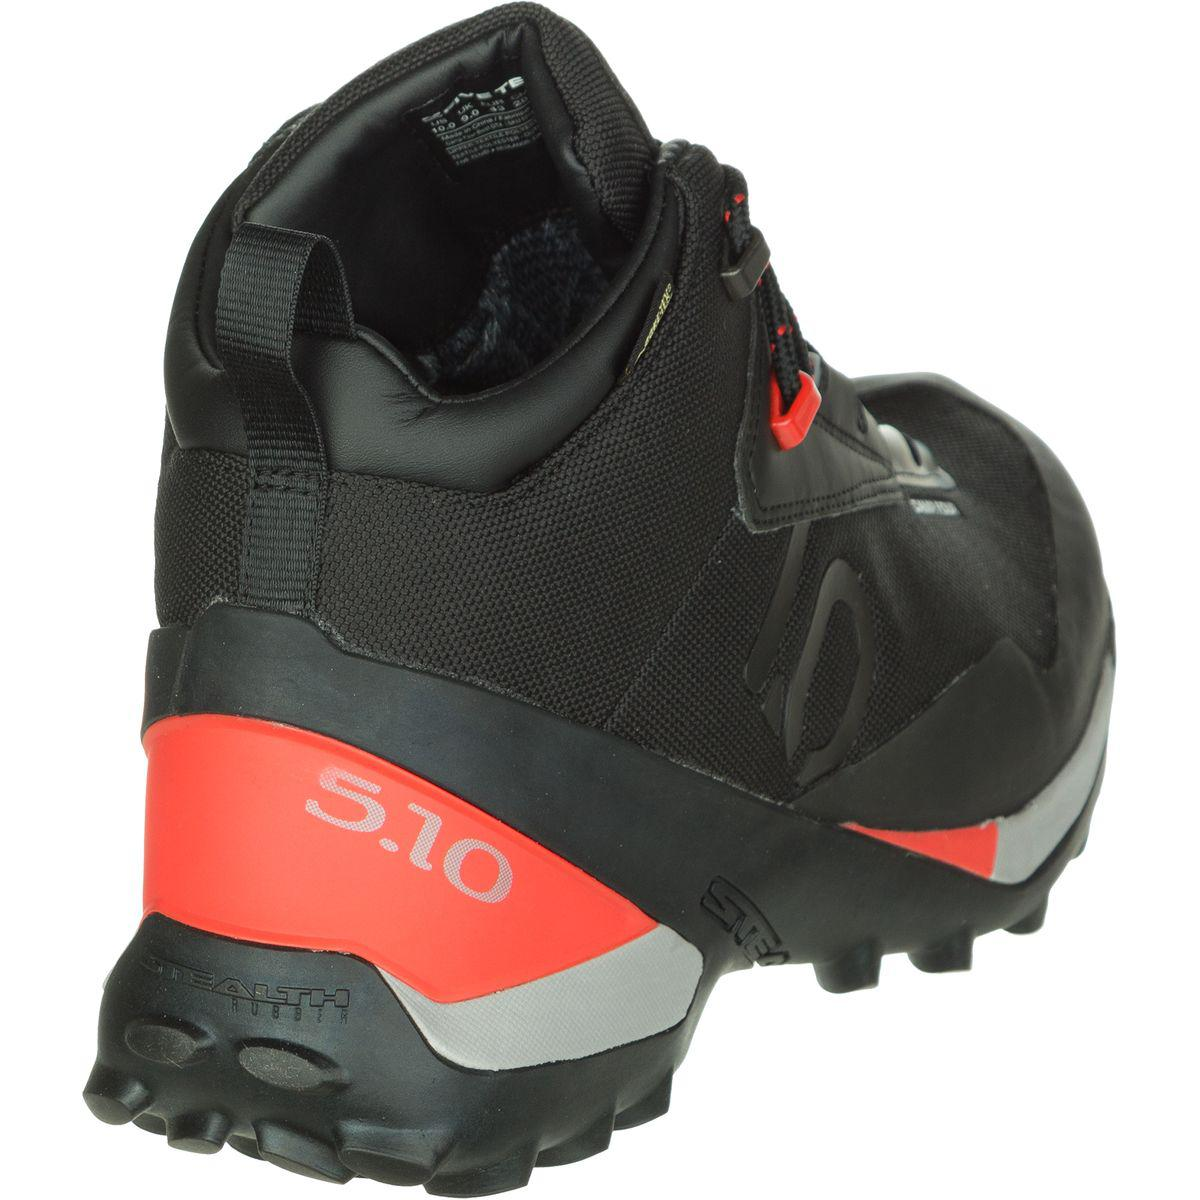 shoes for cheap timeless design high fashion Five Ten Rubber Camp Four Mid Gtx Shoe in Black/Red (Black) for ...